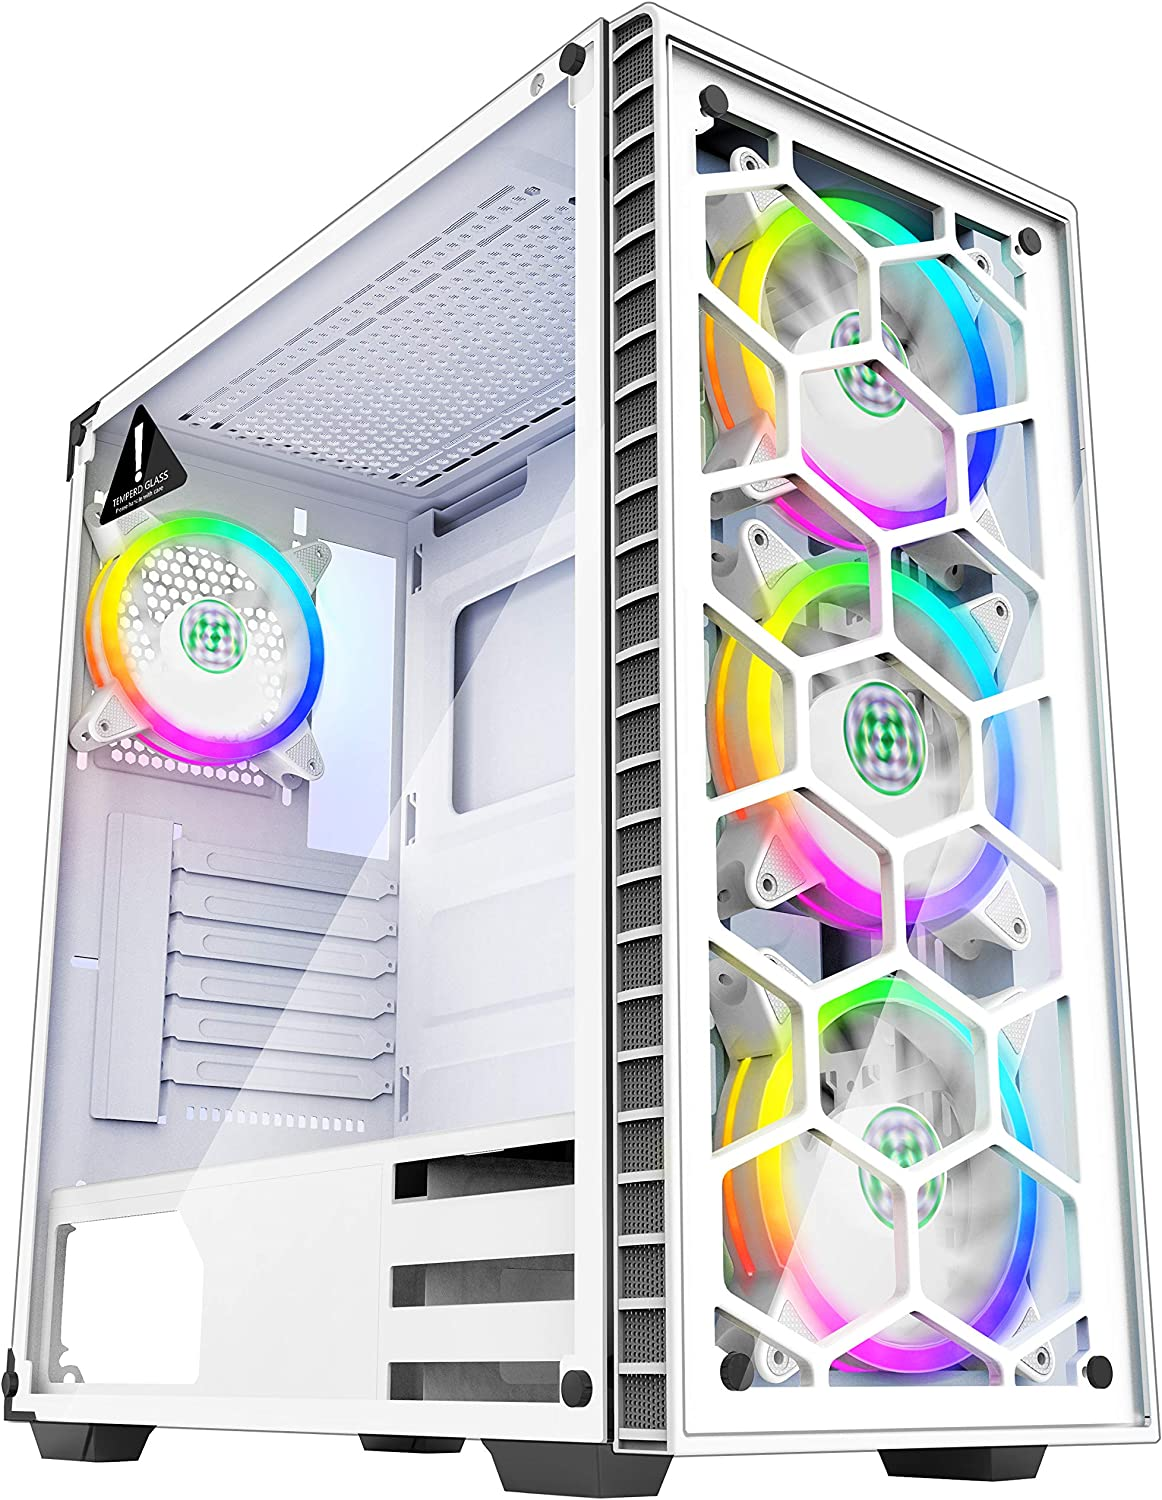 MUSETEX - ATX Mid-Tower PC Gaming Case - 4 PCS 120mm Fans Digital RGB Lighting - 2 Tempered Glass Panels USB 3.0 - White Frame - Computer Chassis Desktop Case(903S4W)